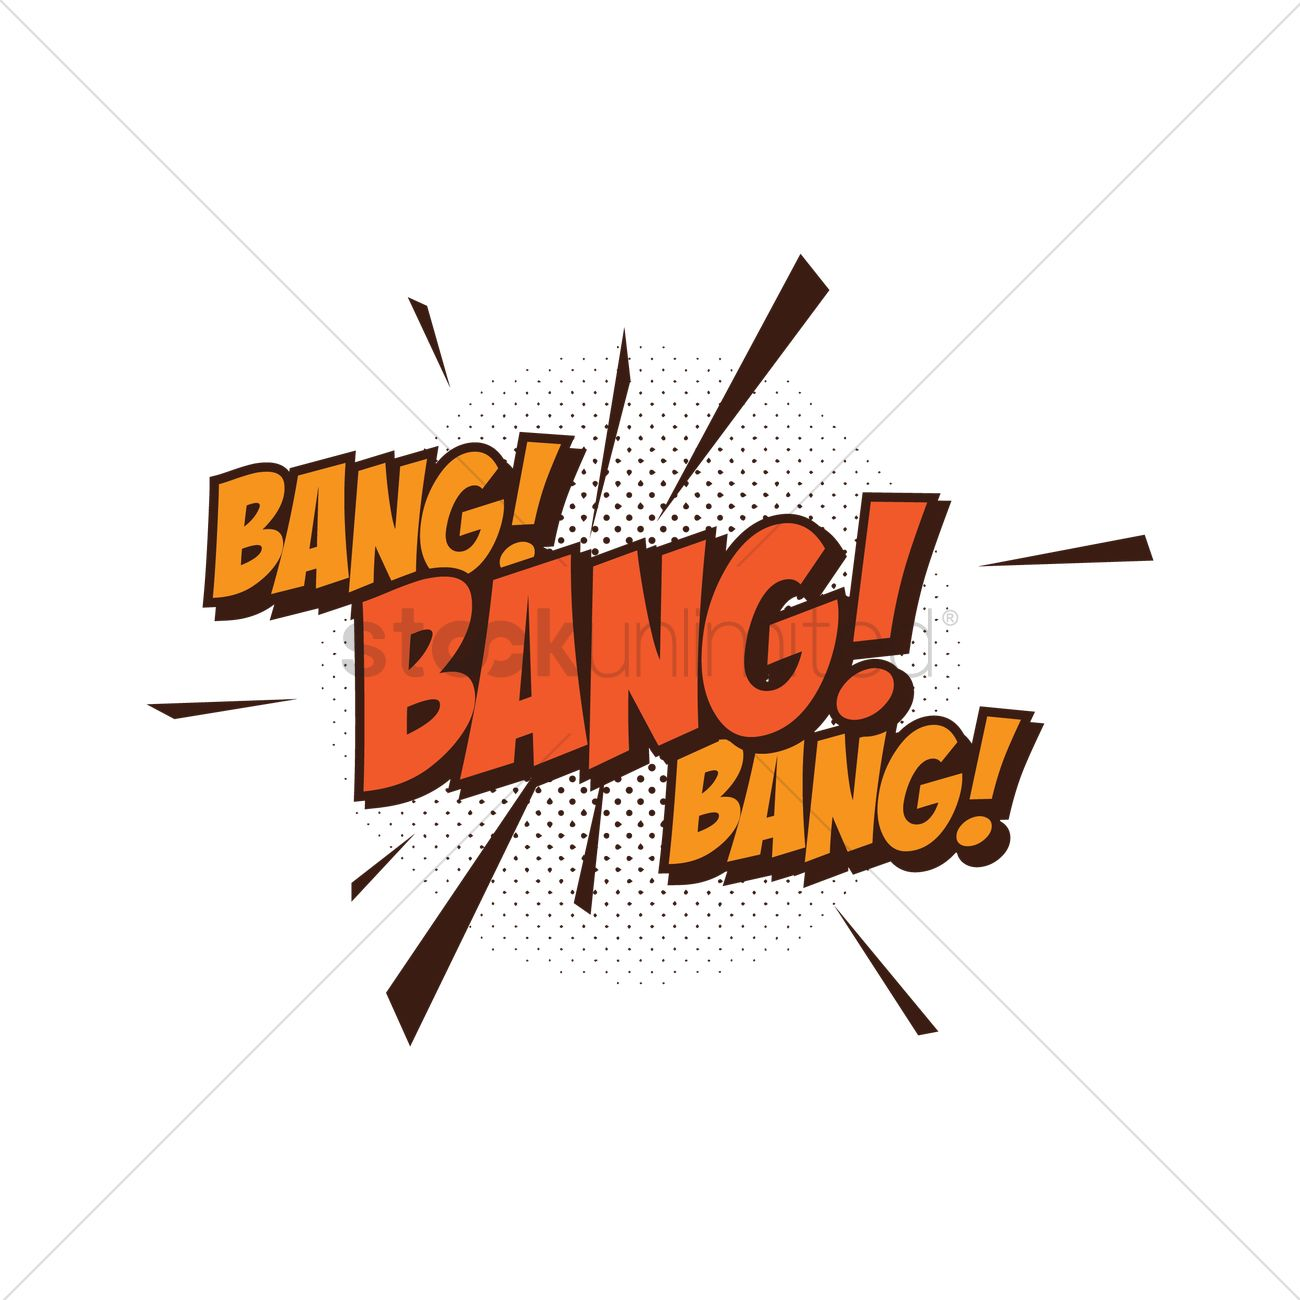 Bang text with comic effect Vector Image.